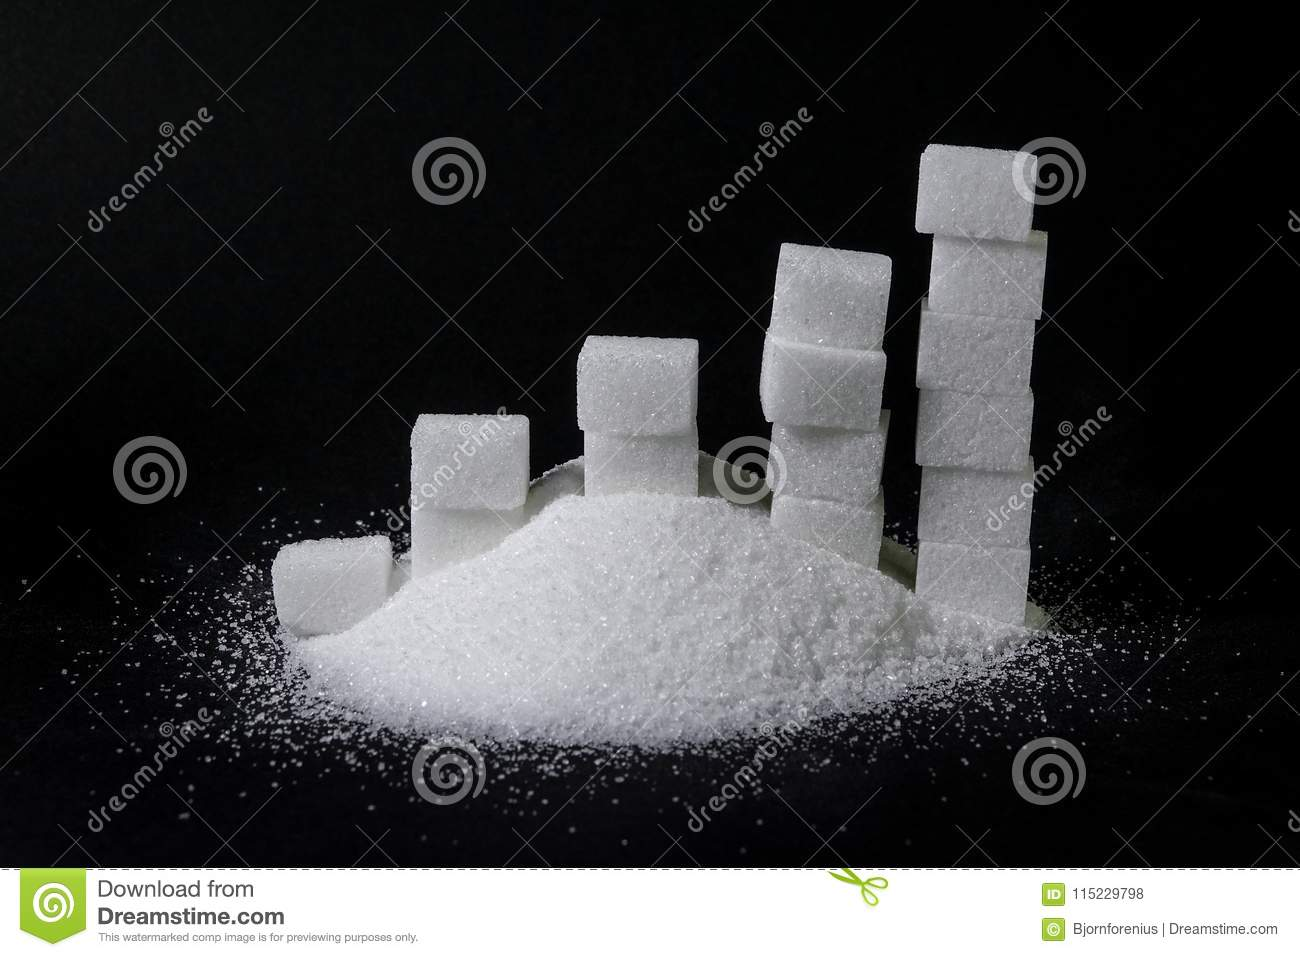 A Pile Of Sugar And A Chart Made Of Sugar Lumps / Pieces